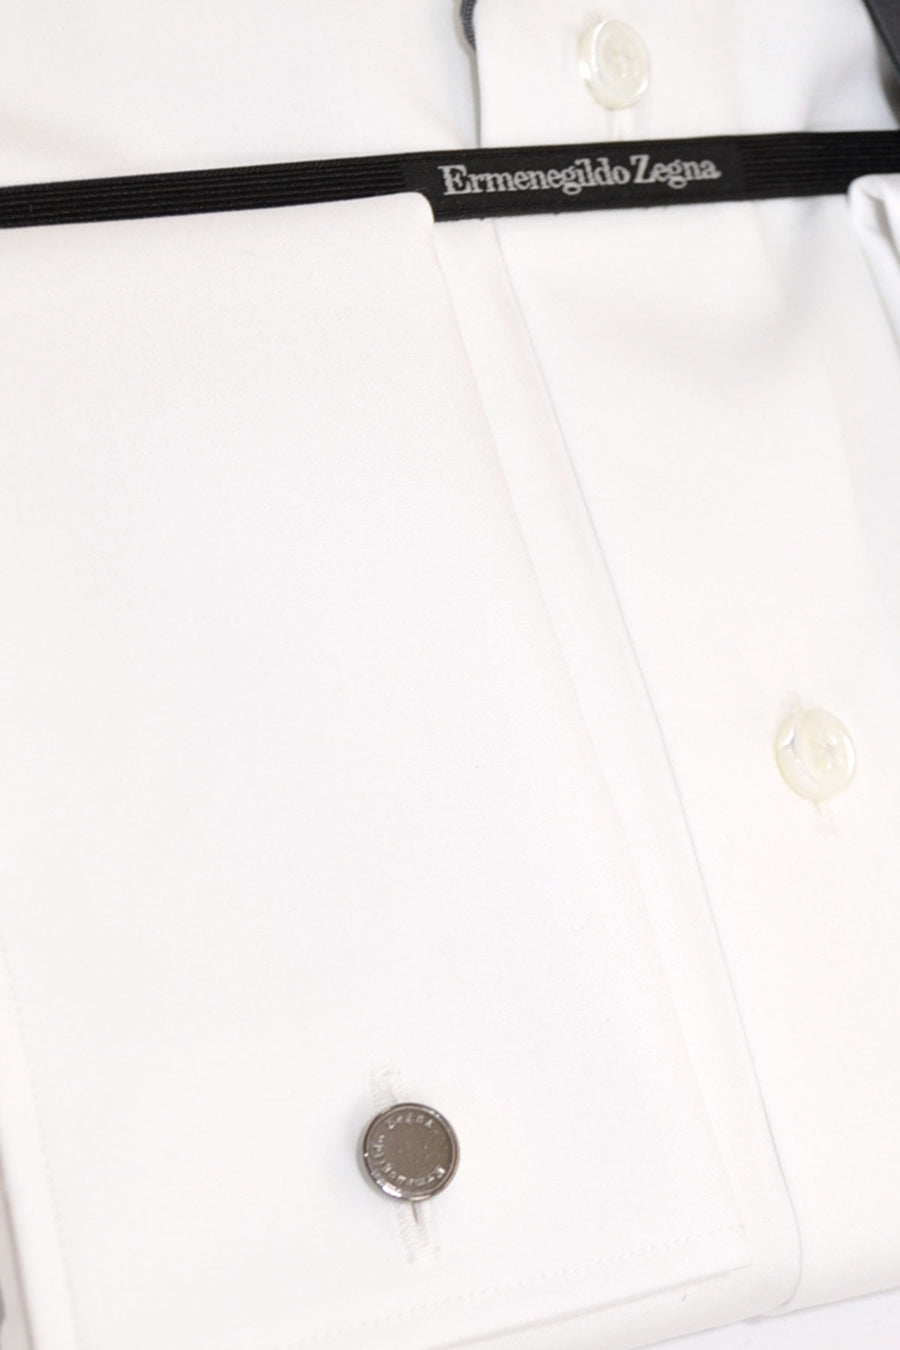 Ermenegildo Zegna Dress Shirt White French Cuffs - Regular Fit 44 - 17 1/2